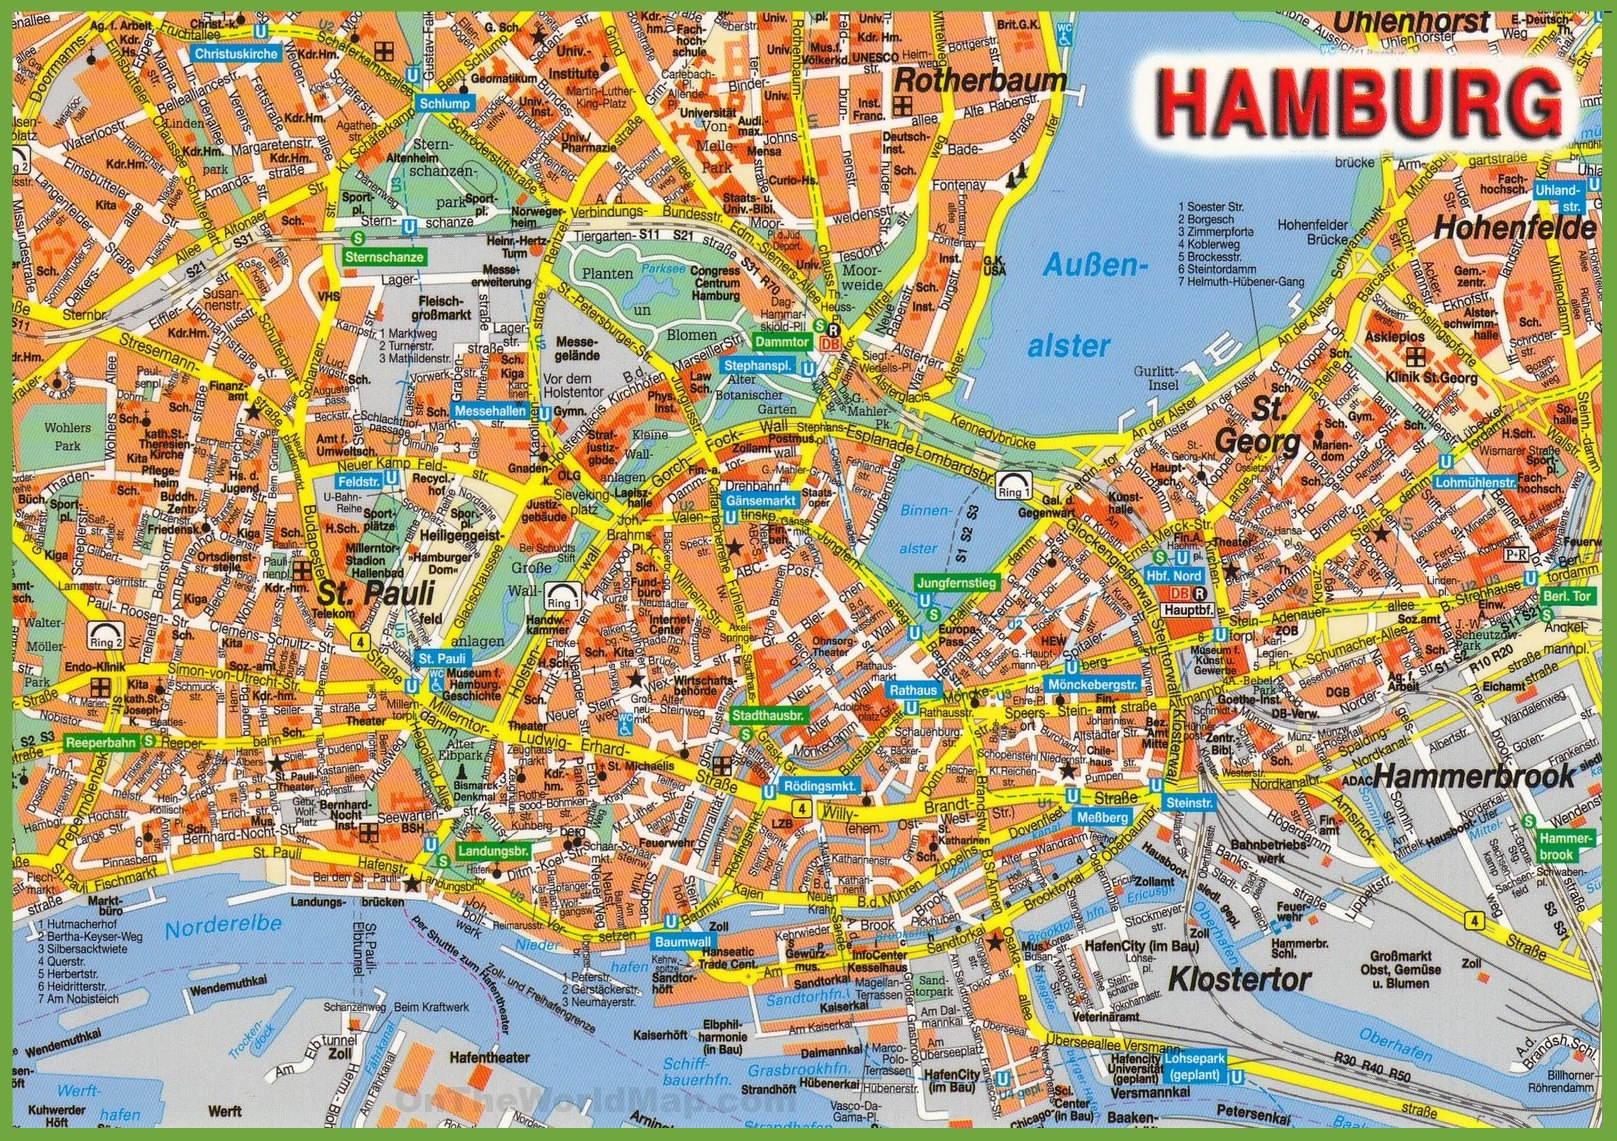 Hamburg tourist attractions map – Germany Tourist Attractions Map